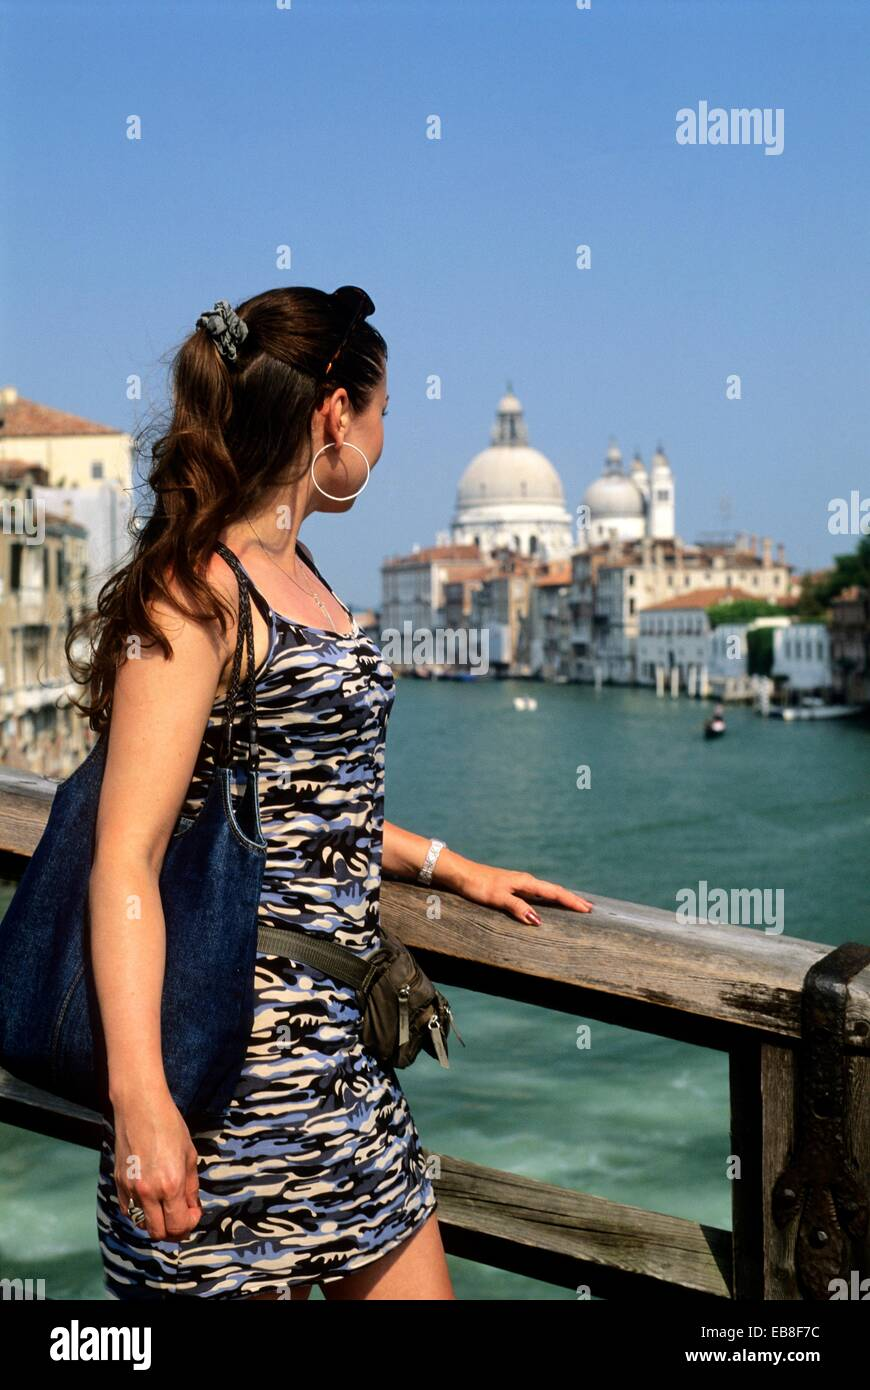 young woman on the Ponte dell´Accademia over the Grand Canal, Venice, Veneto region, Italy, Europe - Stock Image